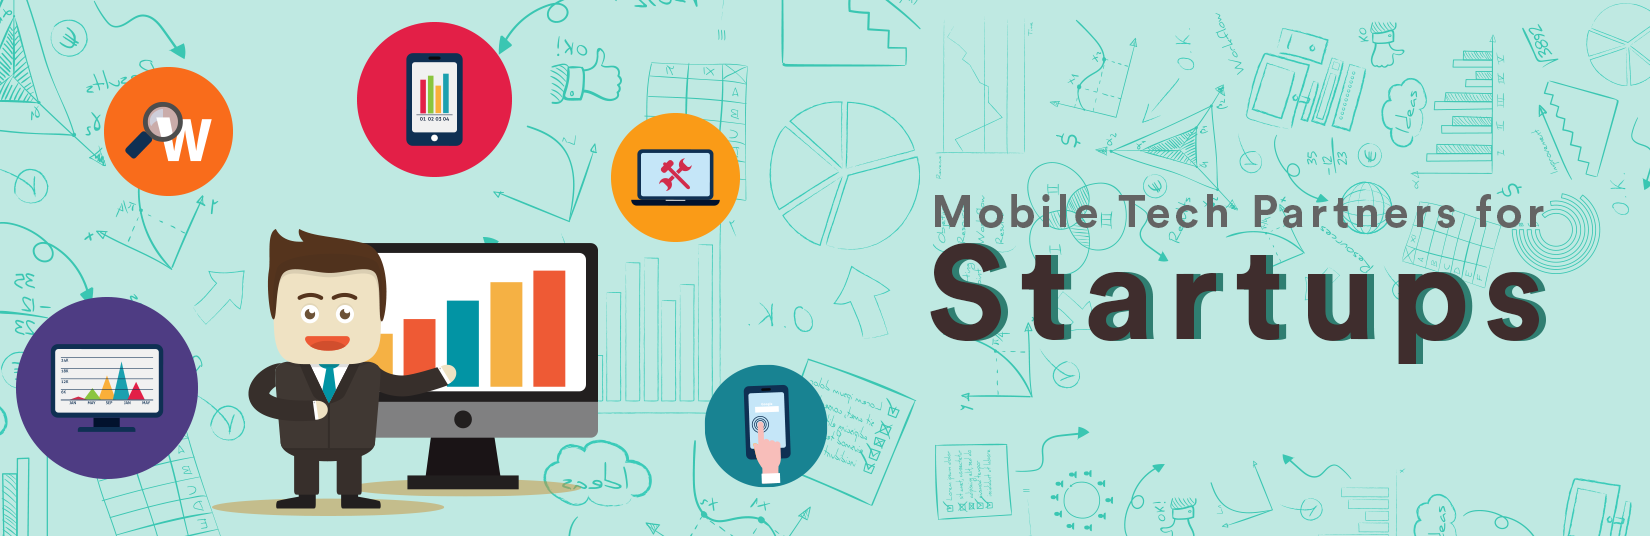 Mobile Tech Partner For Startups(1)